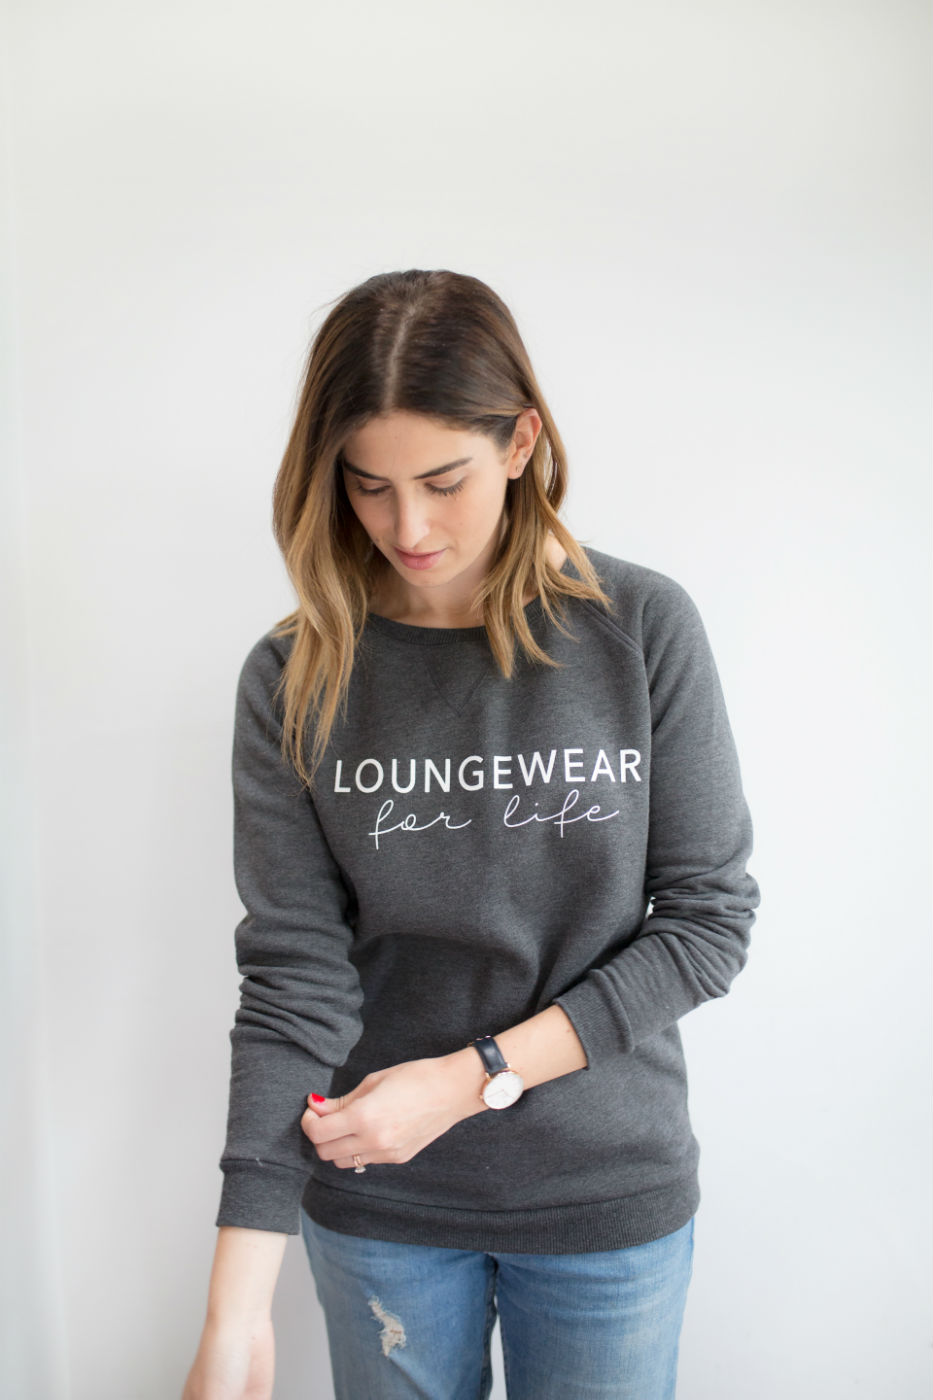 anna-gardner-lily-pebbles-look-good-feel-better-charity-jumpers-october-2016-34